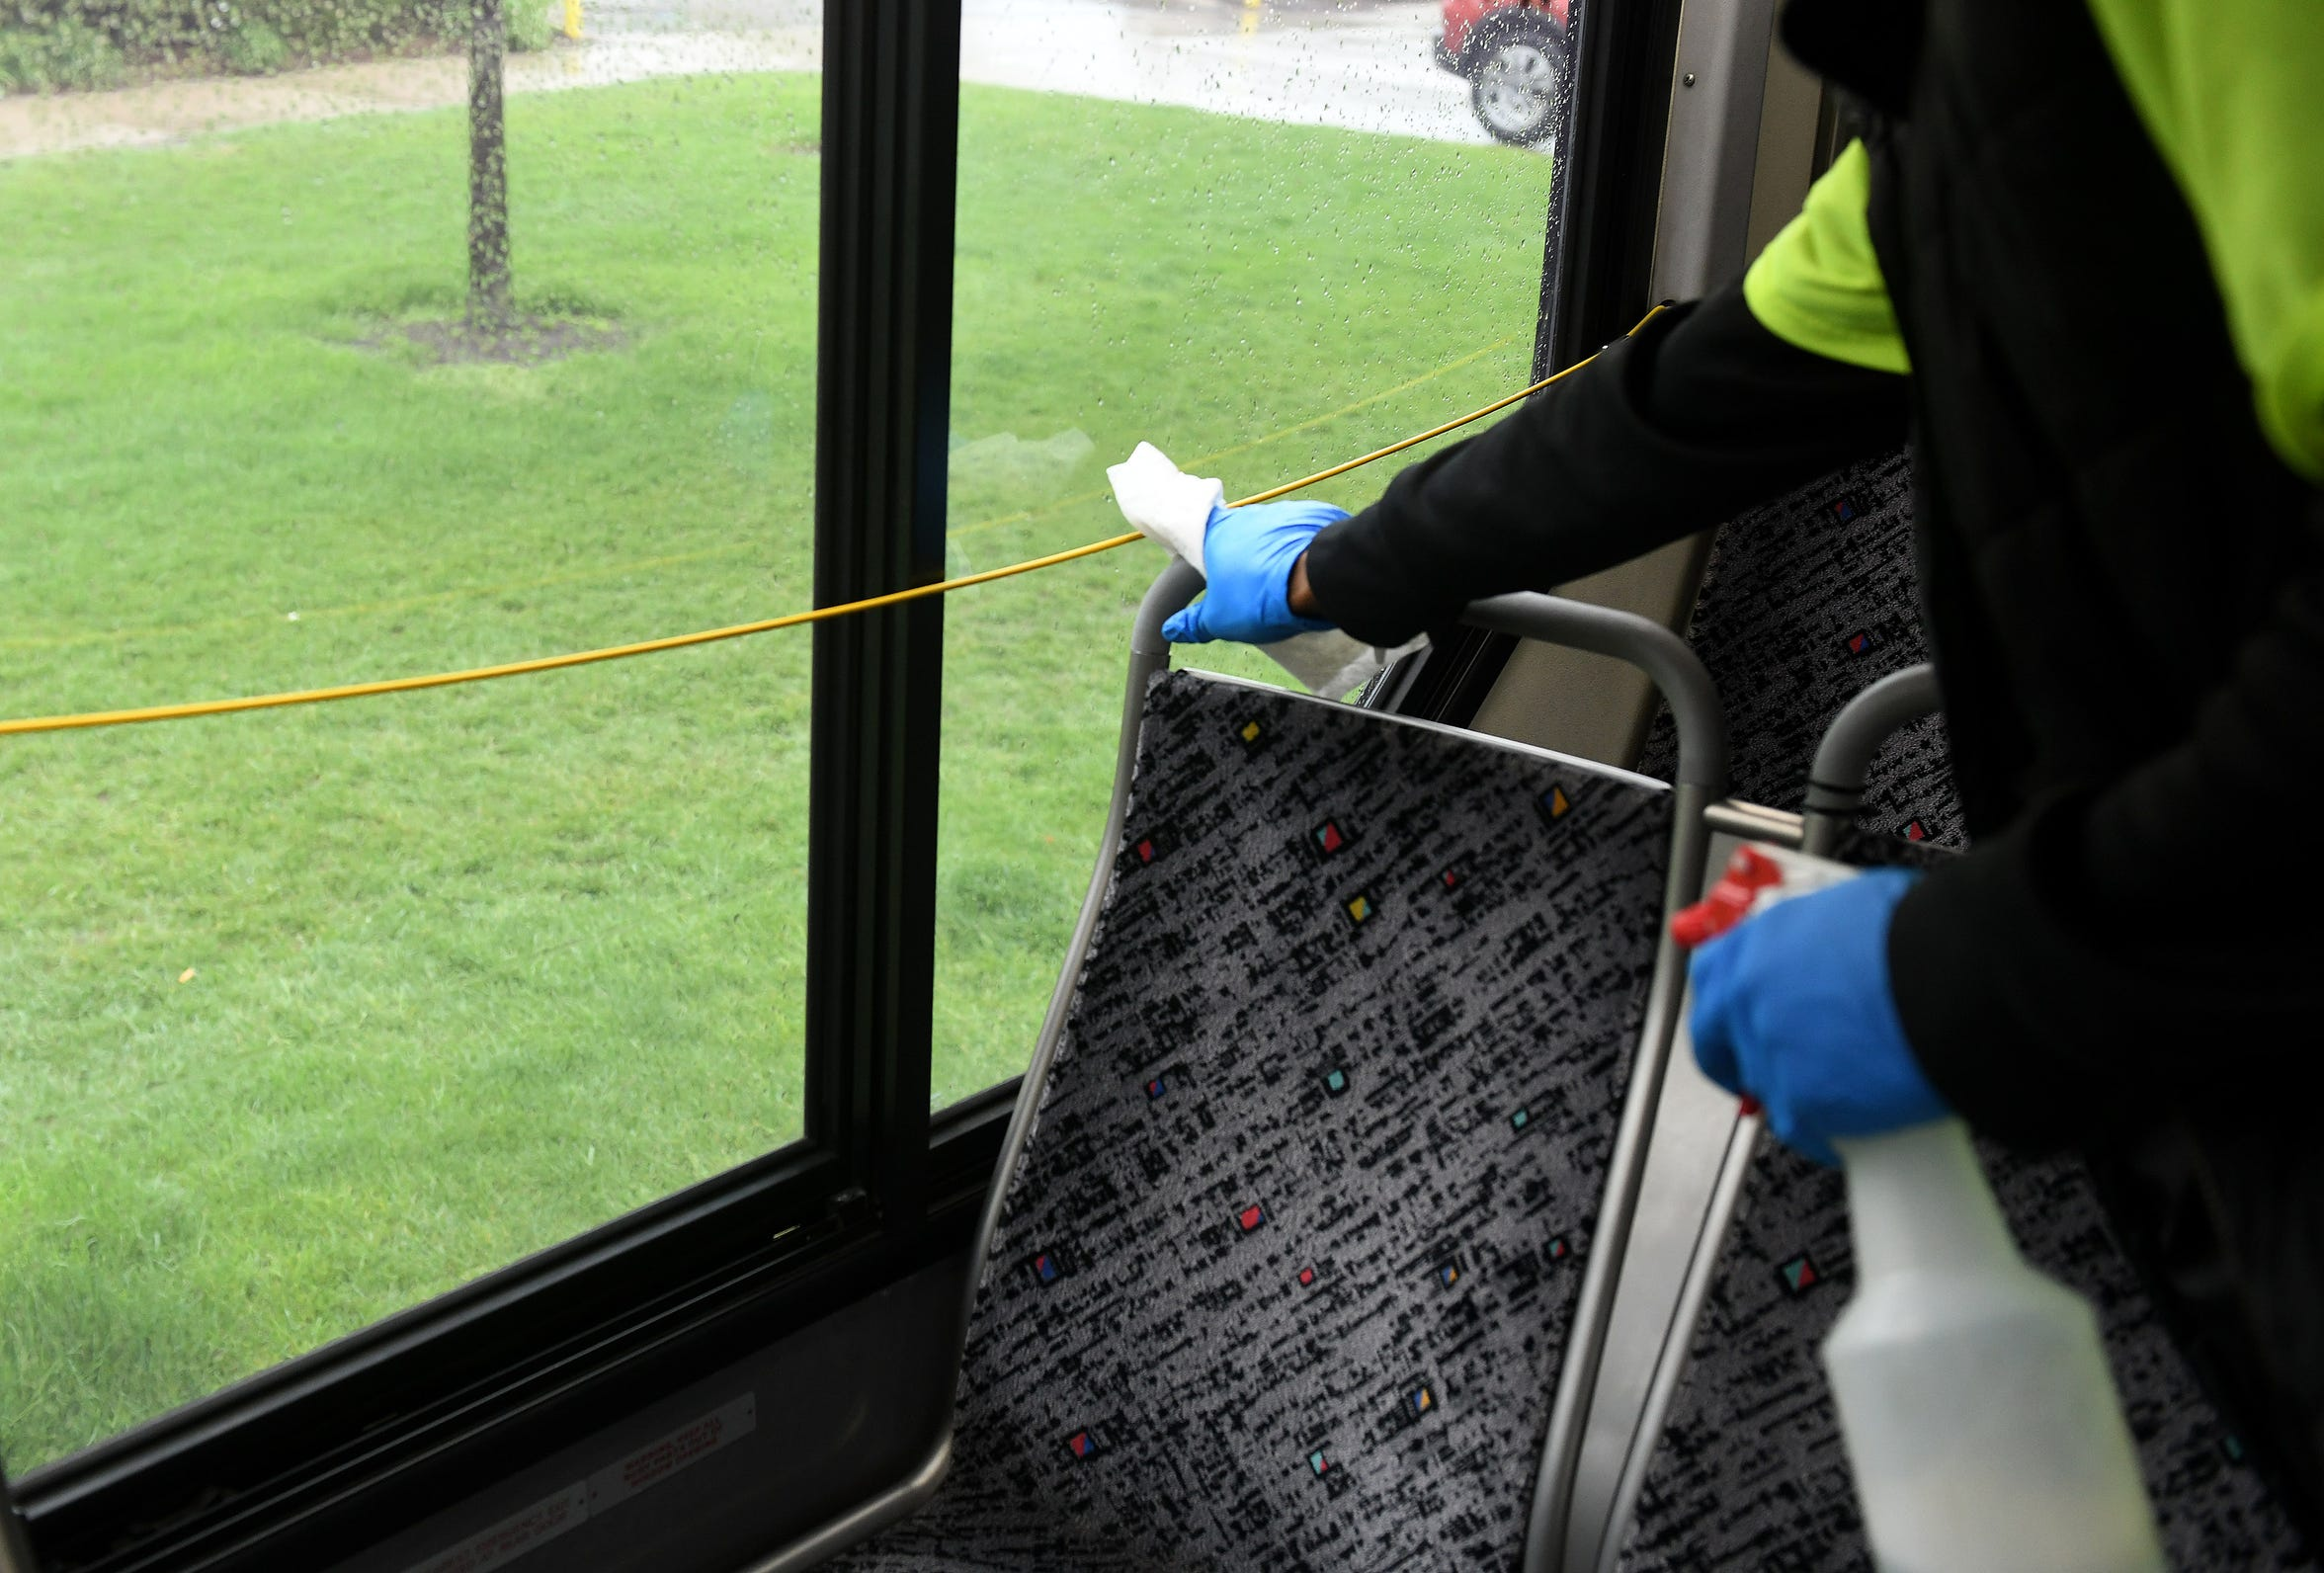 An employee who did not want to be identified disinfects the 17 bus during the stop at Ascension St. John Hospital in Detroit on May 18, 2020. This is the halfway point of the eastbound loop from the State Fair Transit Center and sits there for approximately 30 minutes.